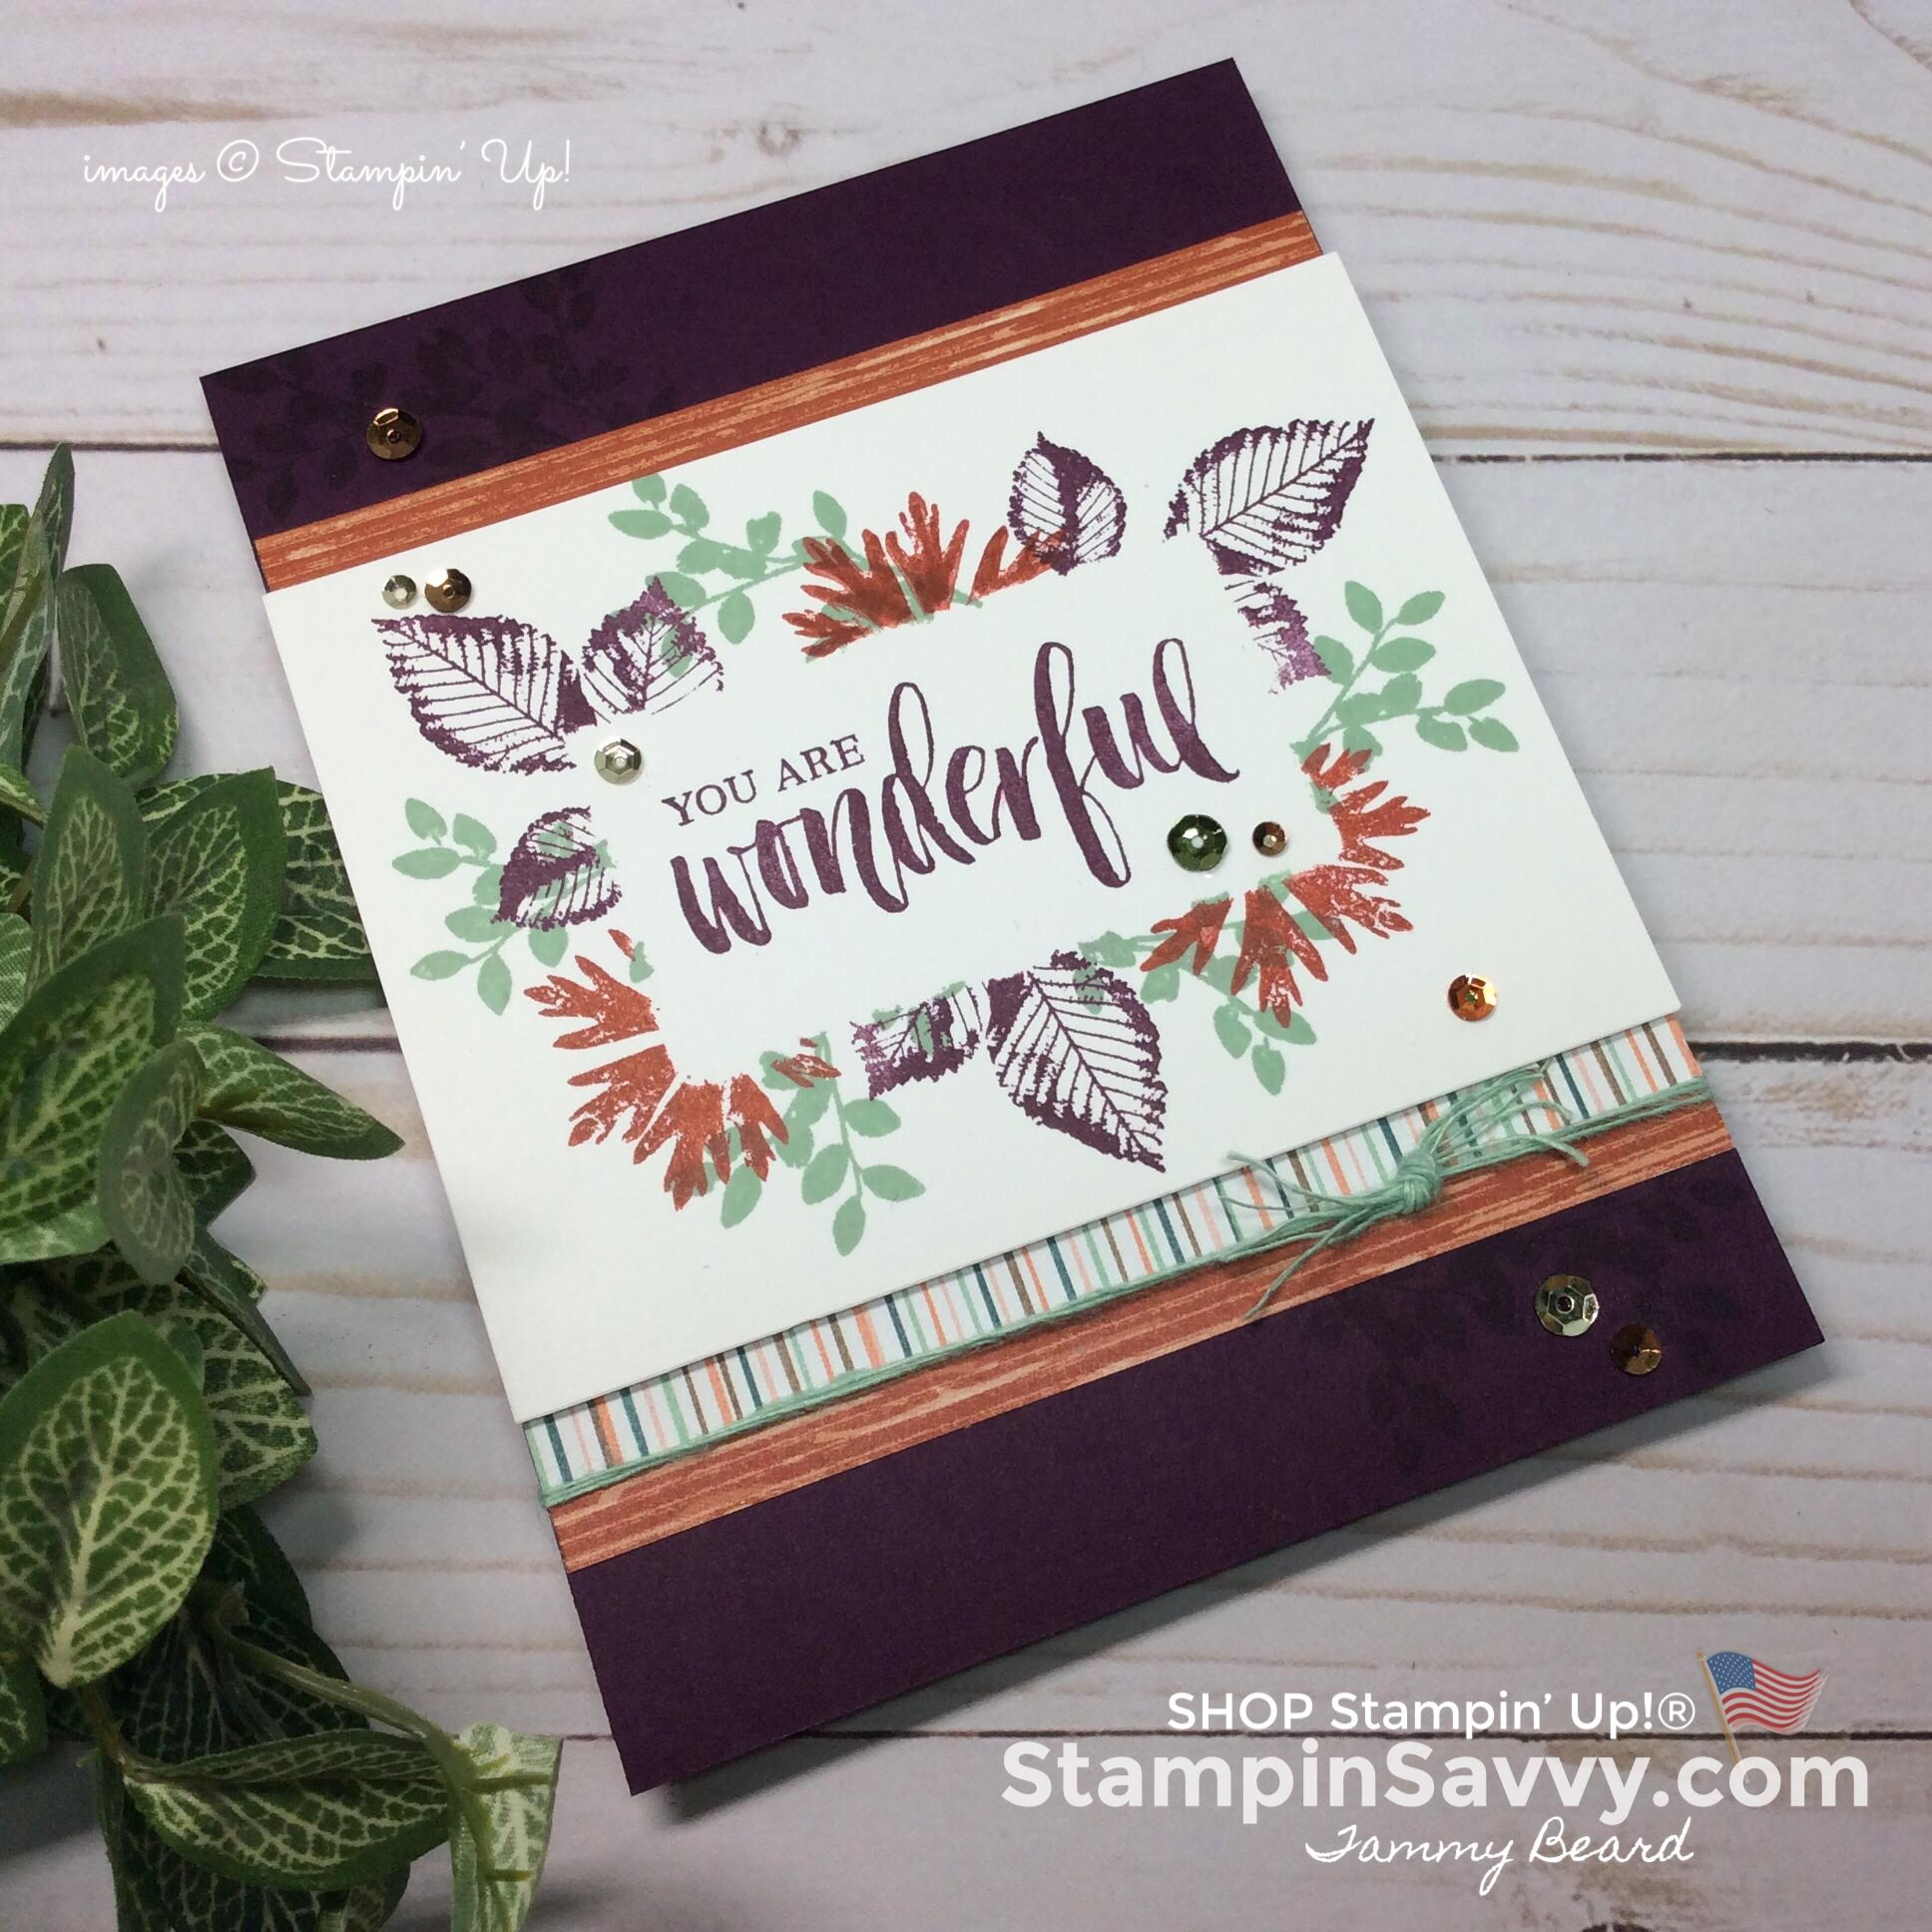 rooted in nature cards, you are wonderful, card ideas, stampin up, stampinup, stampin savvy, tammy beard